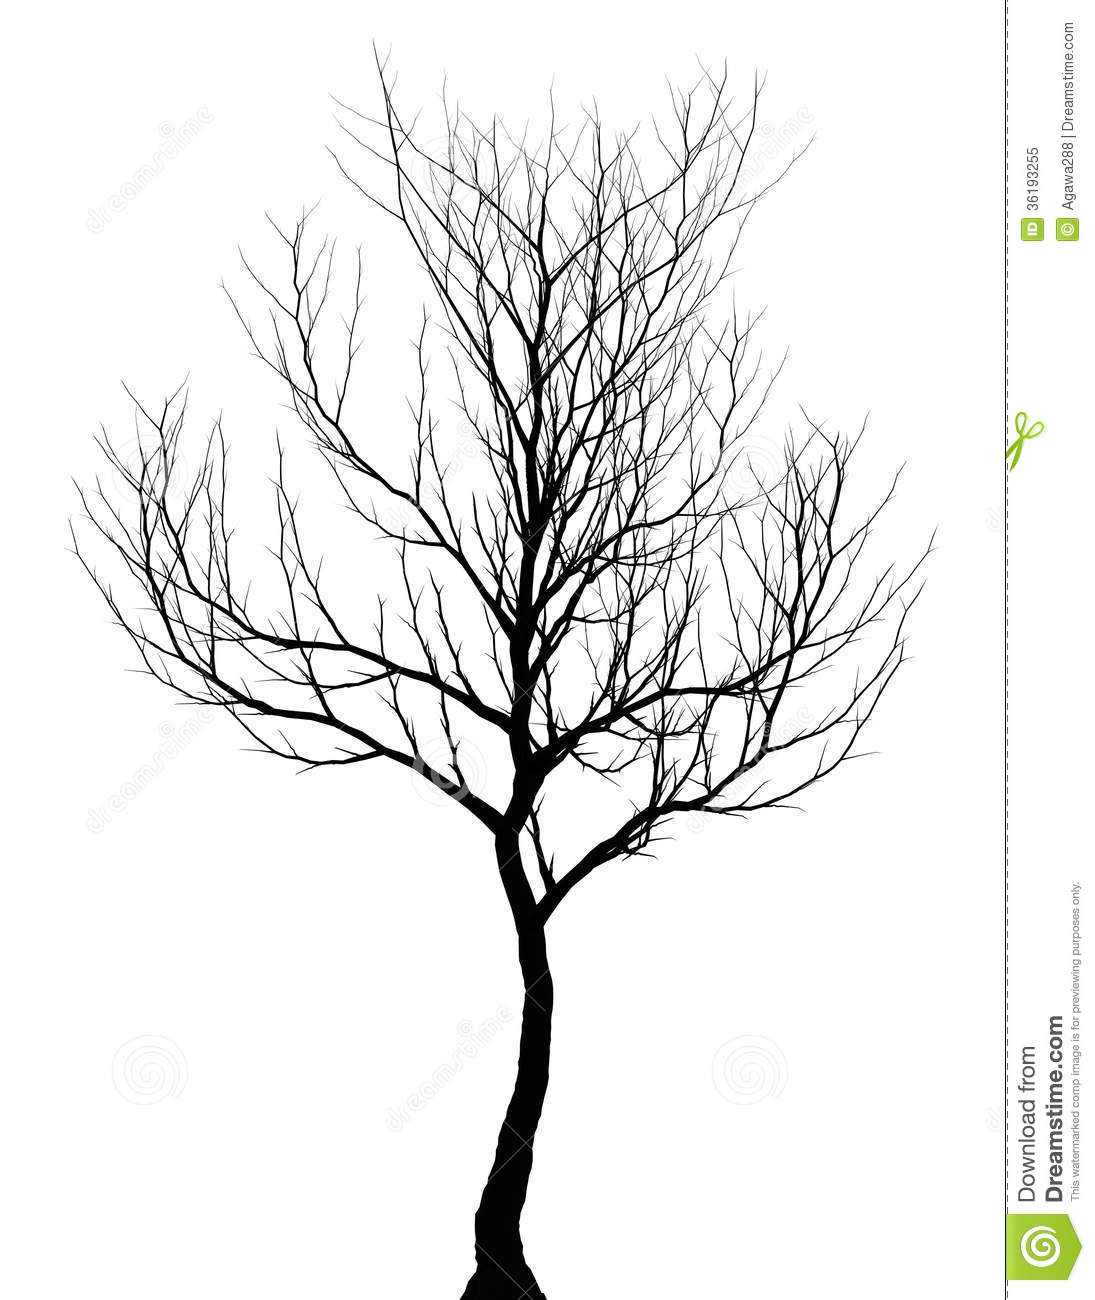 Tree Simple Dark Silhouette Isolated Royalty Free Stock Photo Image